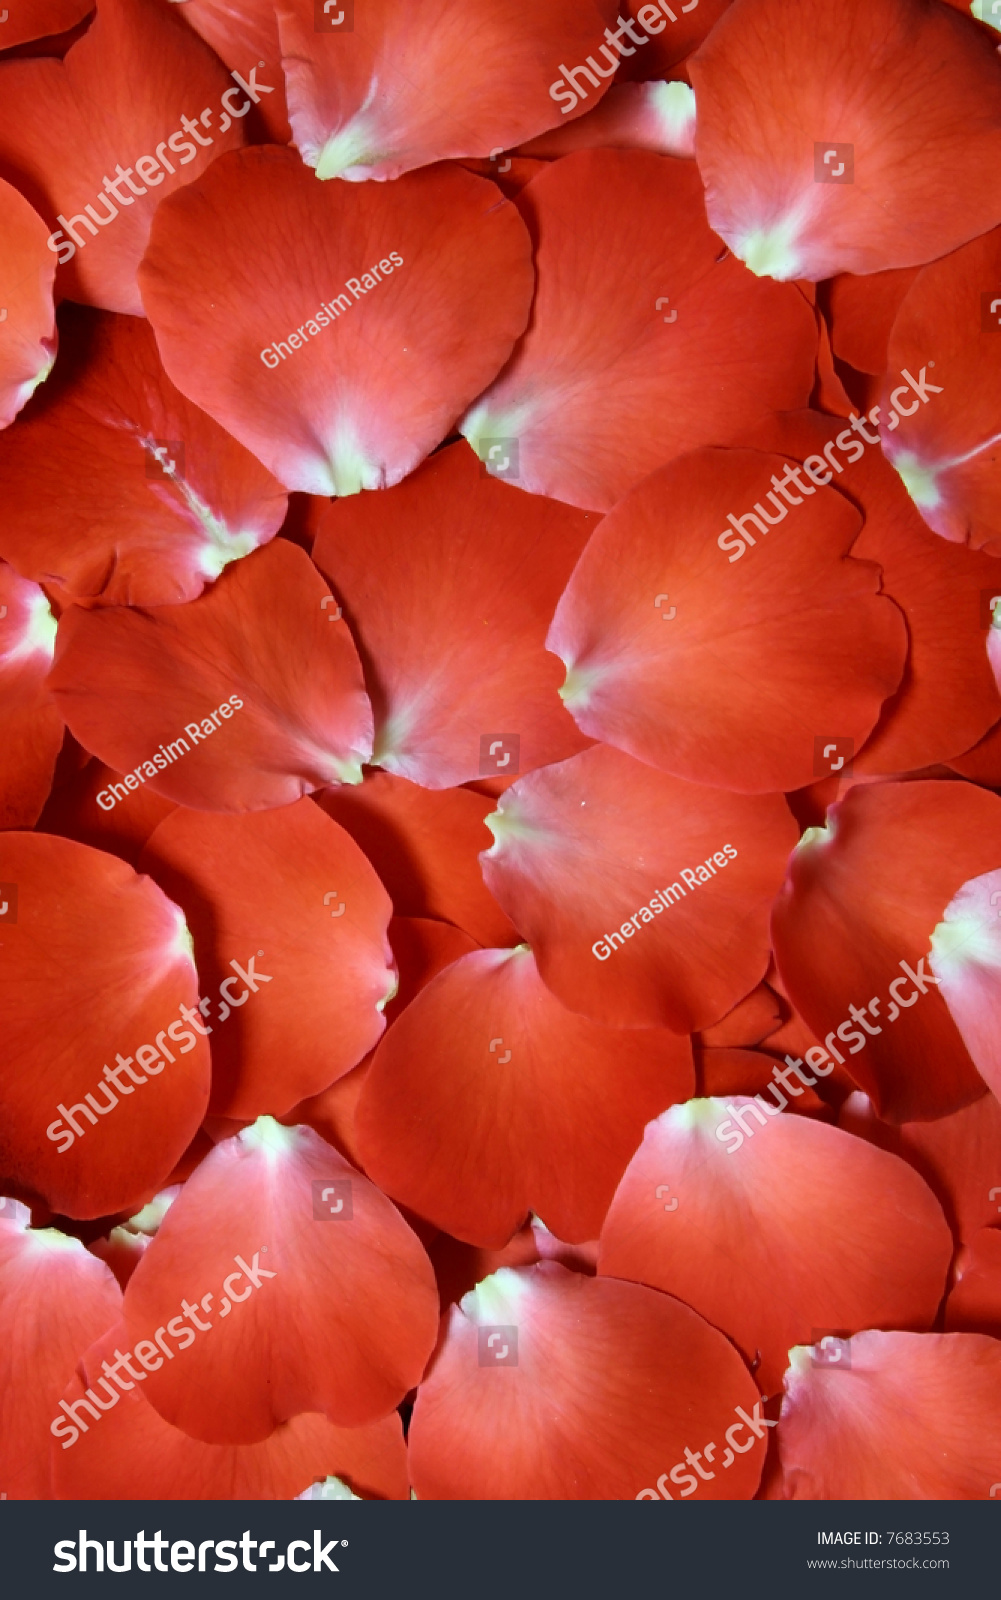 Where To Buy Rose Petals For Bed 28 Images Where To